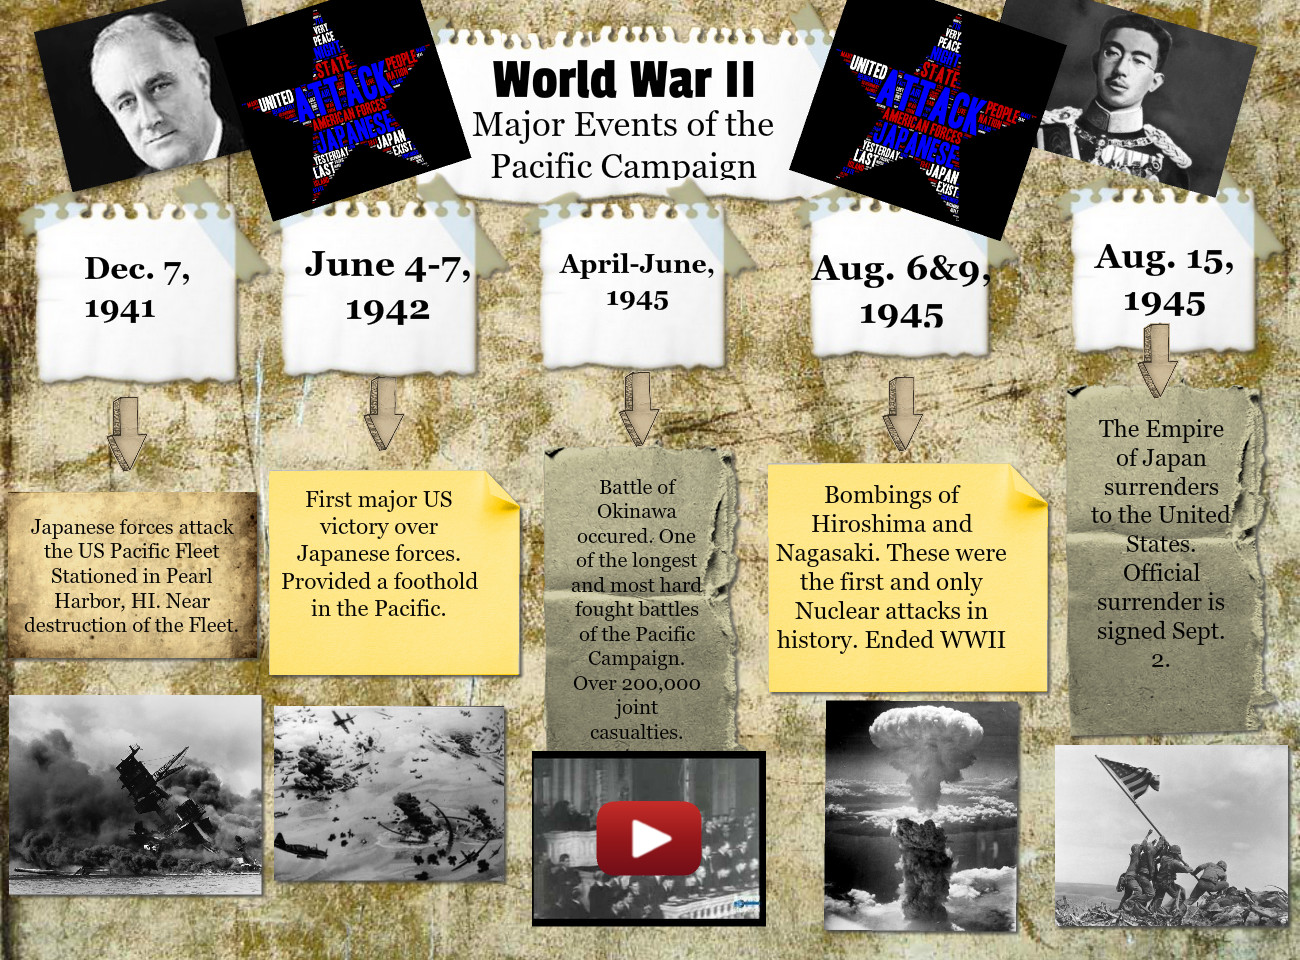 WW II Major Events of the Pacific Campaign